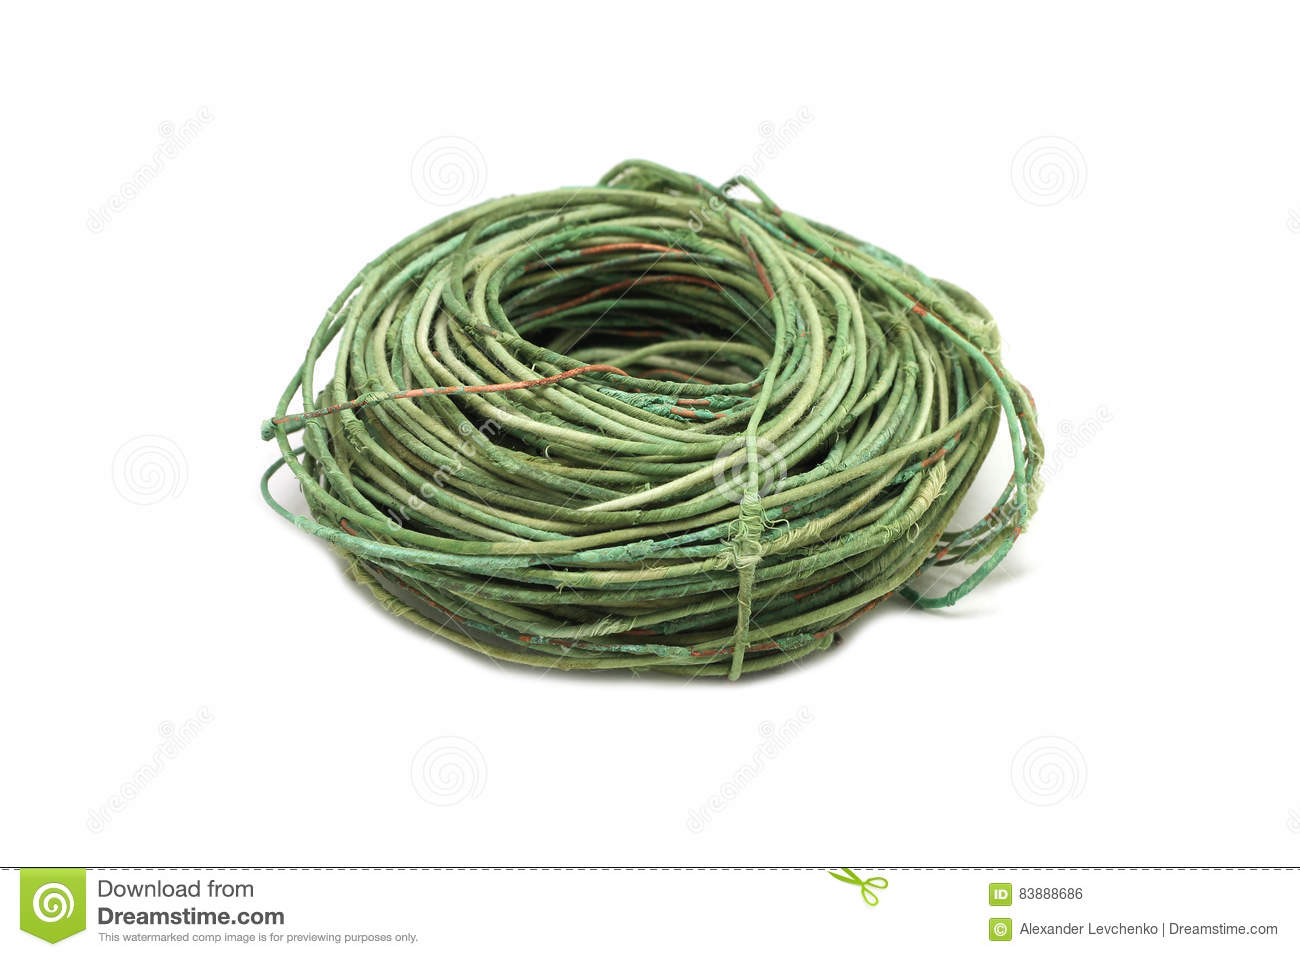 Skein of old copper wires stock photo. Image of oxidation - 83888686